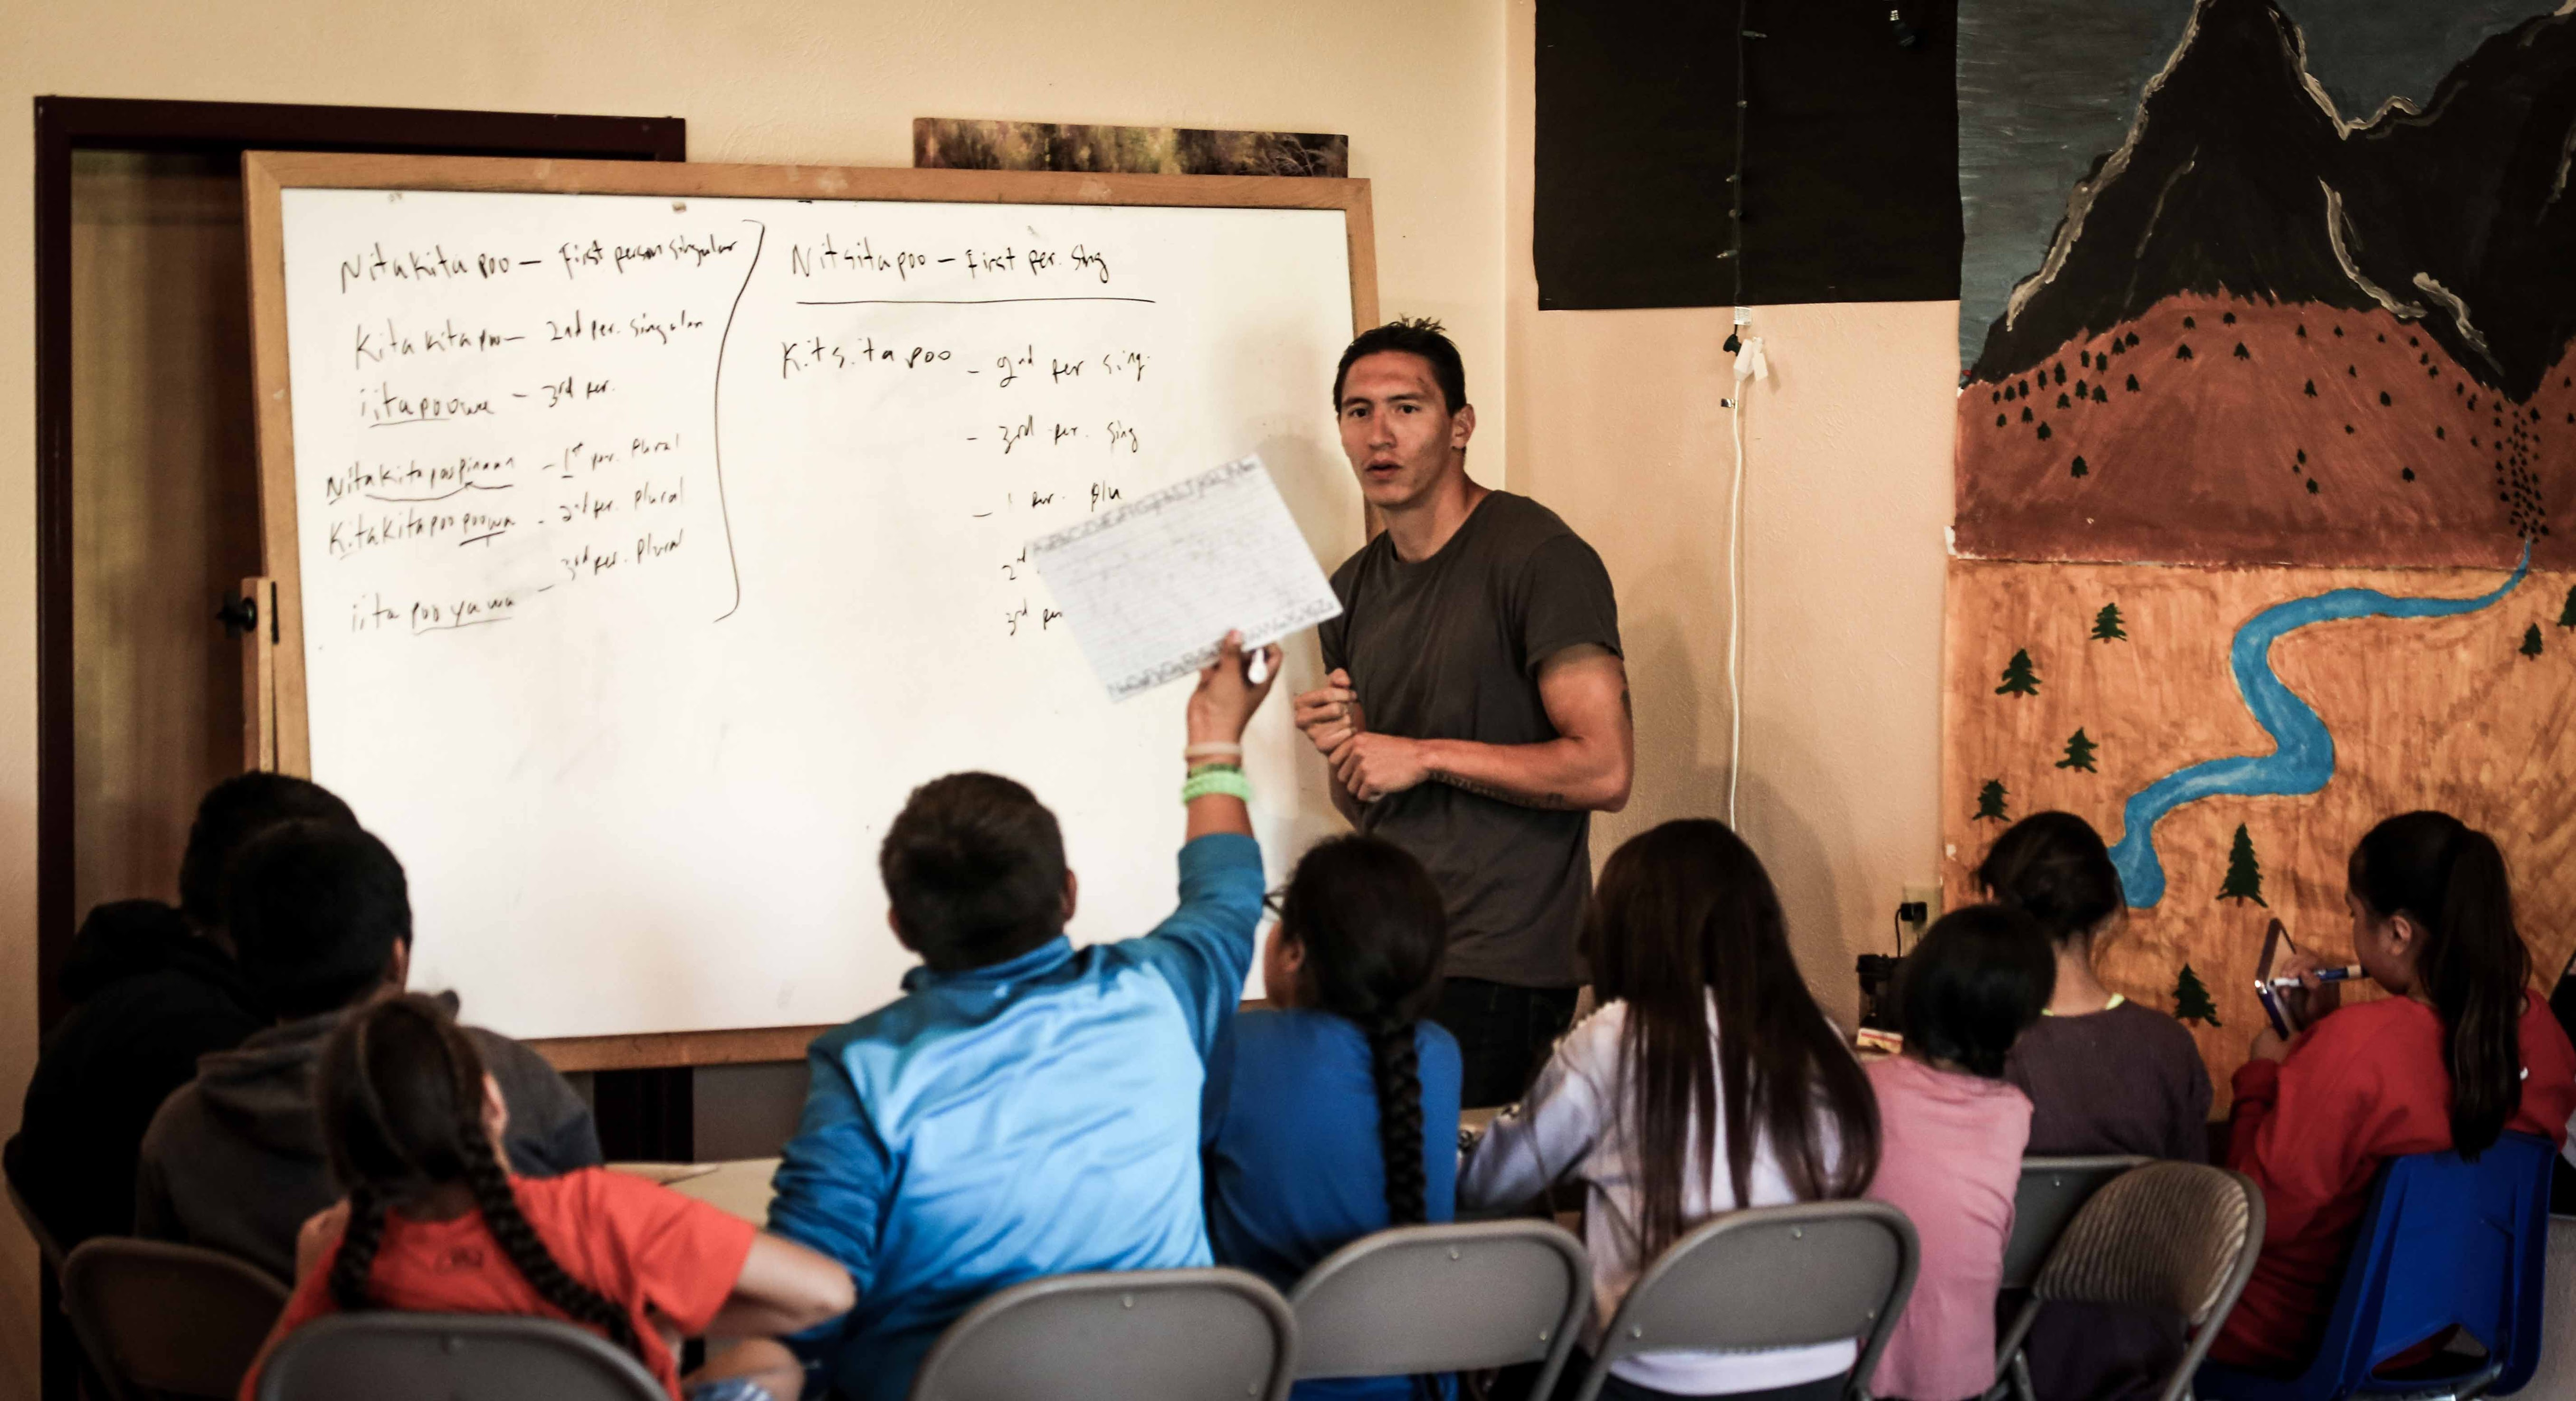 A Blackfoot teacher uses a whiteboard to teach young Blackfoot students at Cuts Wood School in Browning, Montana.